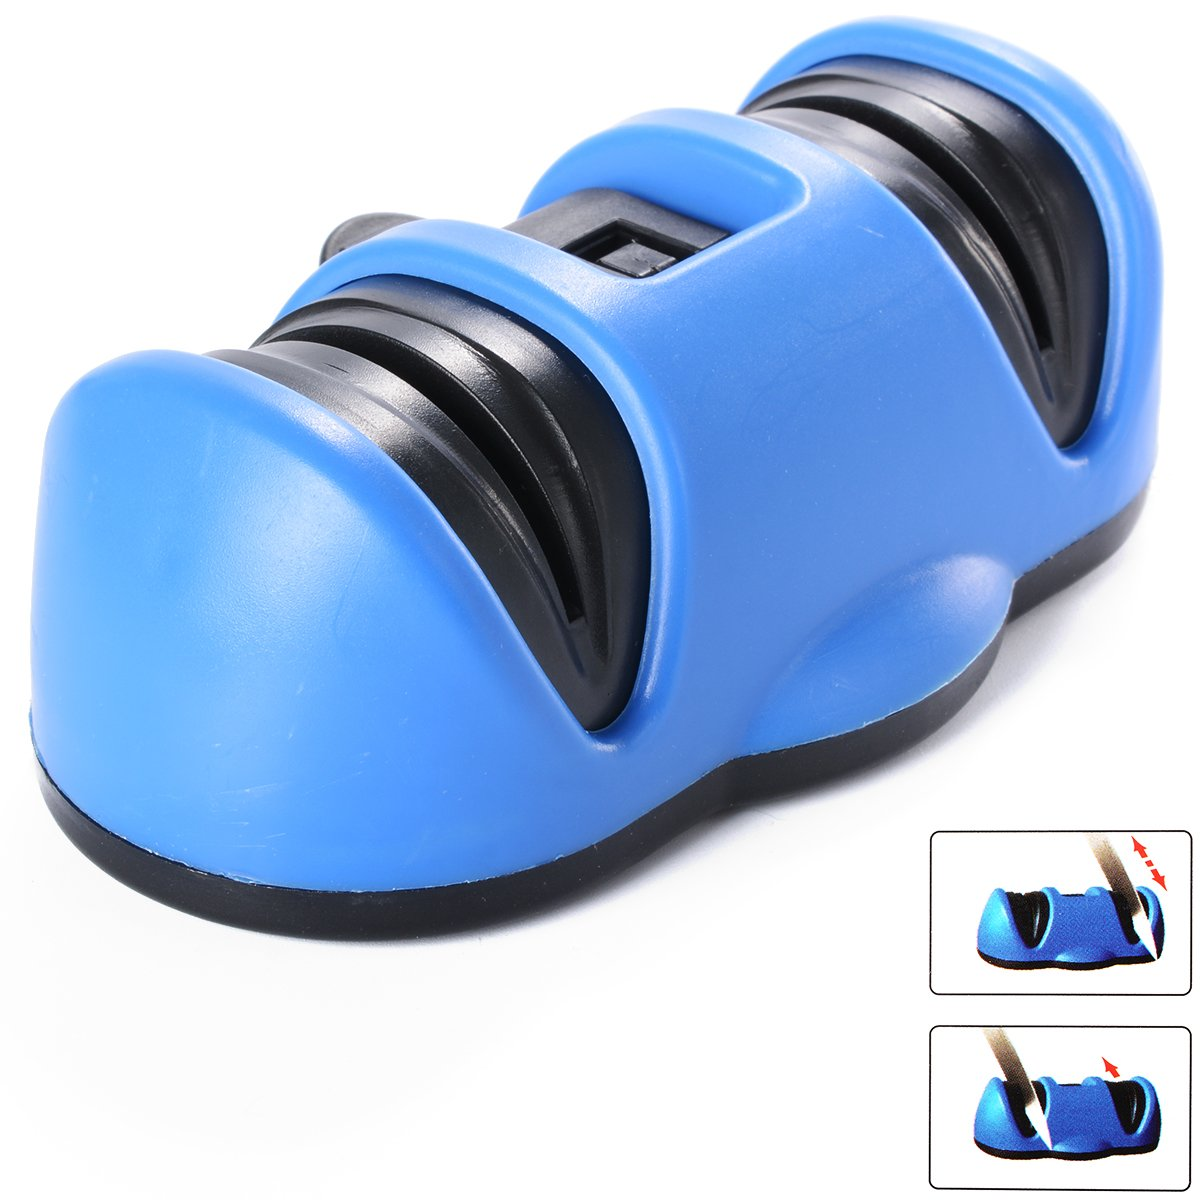 Xcellent Global Professinol Knife Sharpener Two Stage Sharpener With Safety Suction Grip Blue HG096 S-HG096L